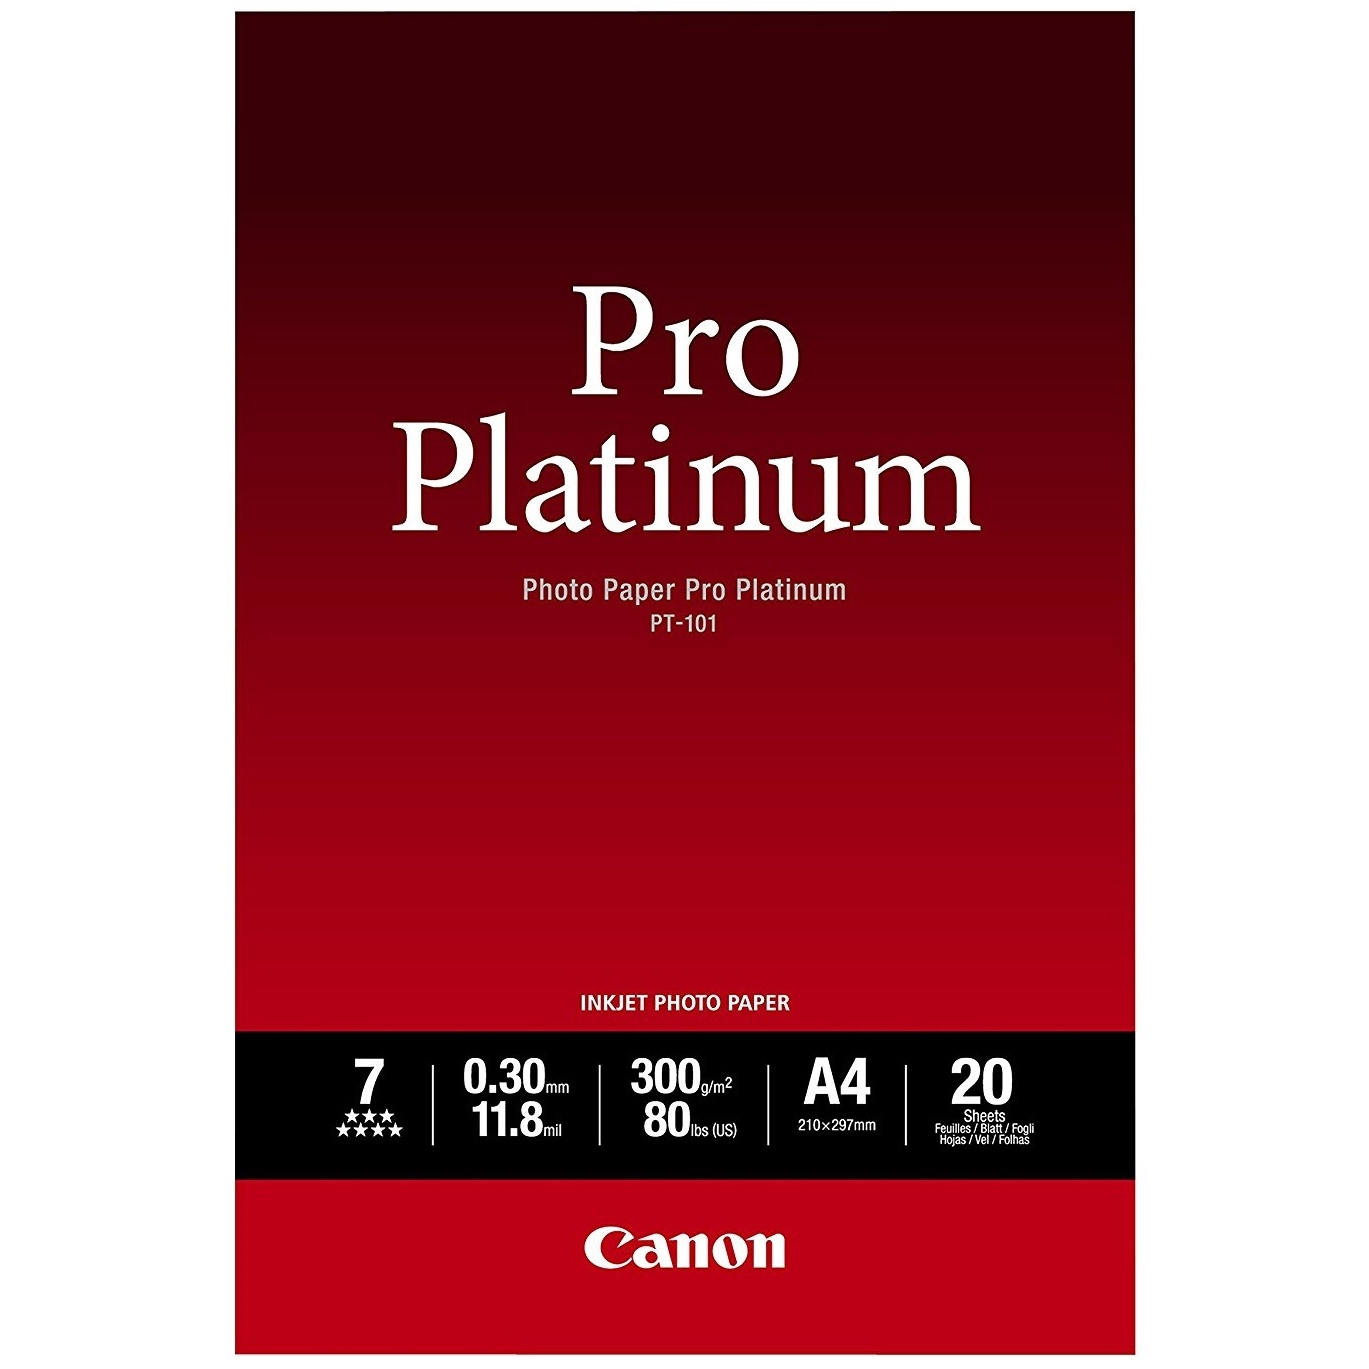 Original Canon PT-101 300gsm A4 Pro Platinum II Photo Paper - 20 Sheets (2768B016)